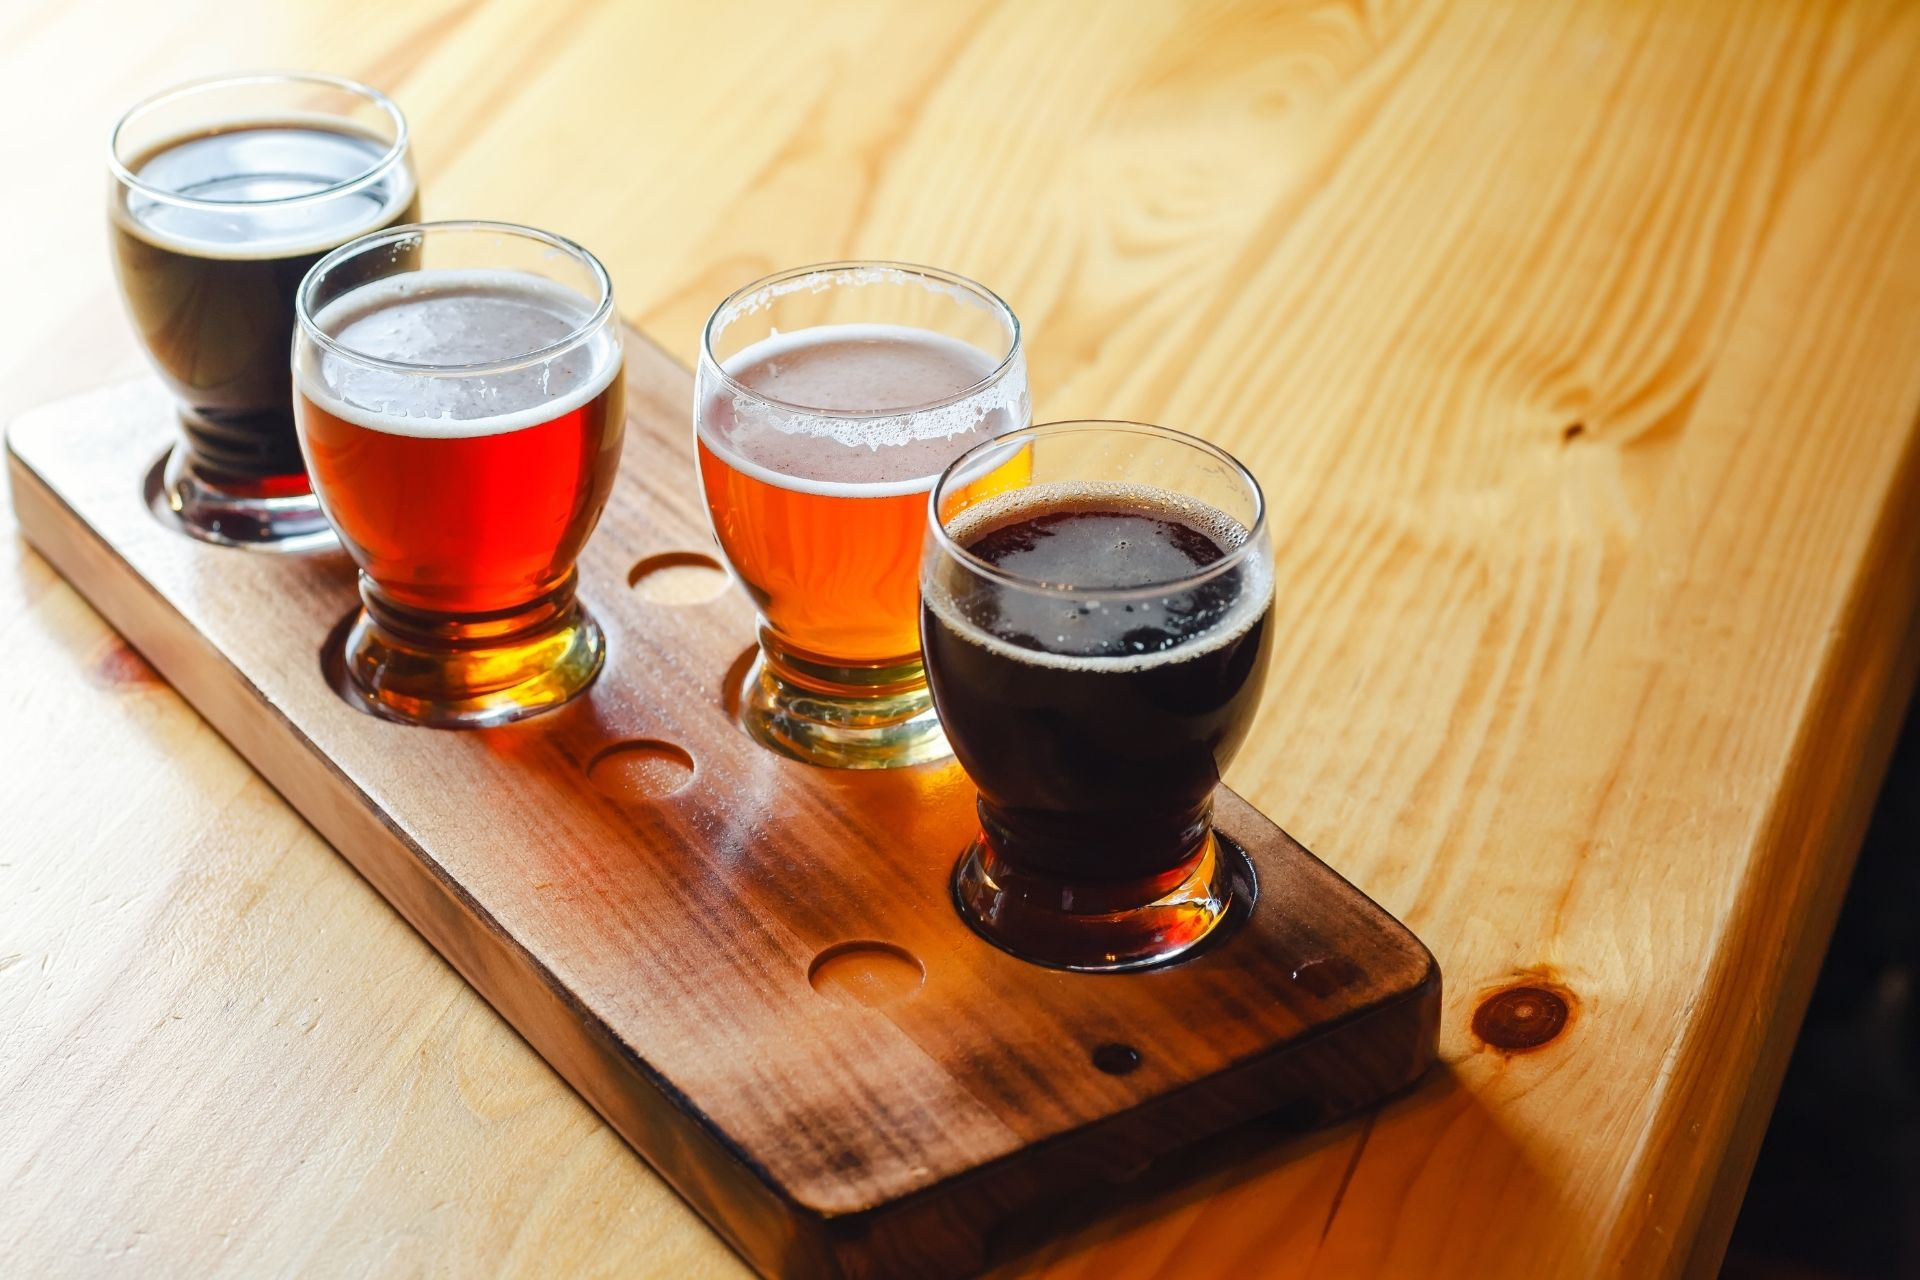 Craft Beer vs. Draft Beer: What Is The Difference?